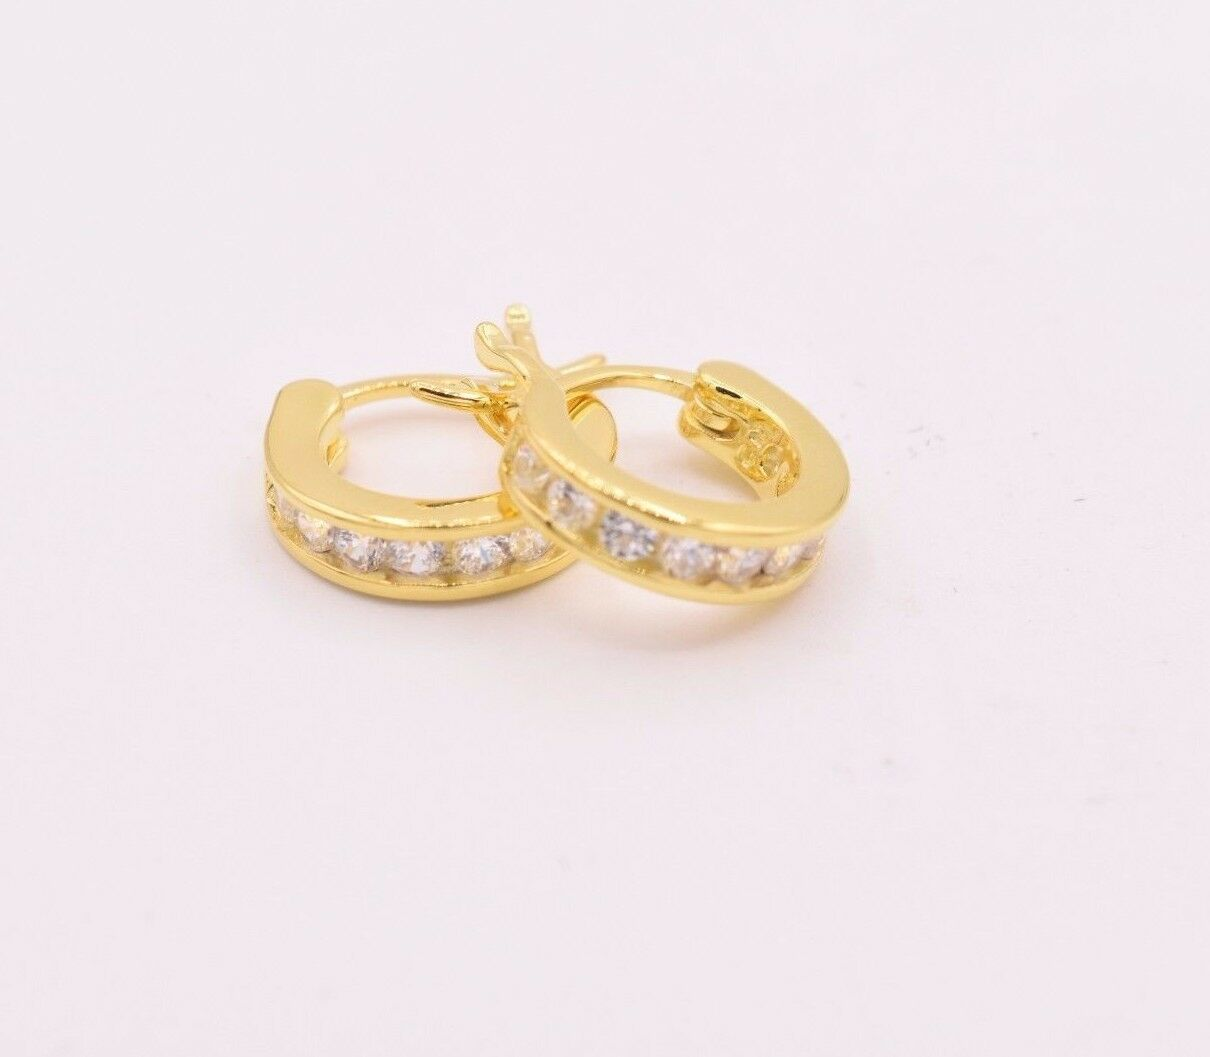 set ball smooth earring silver round over gold high polish stud size earrings